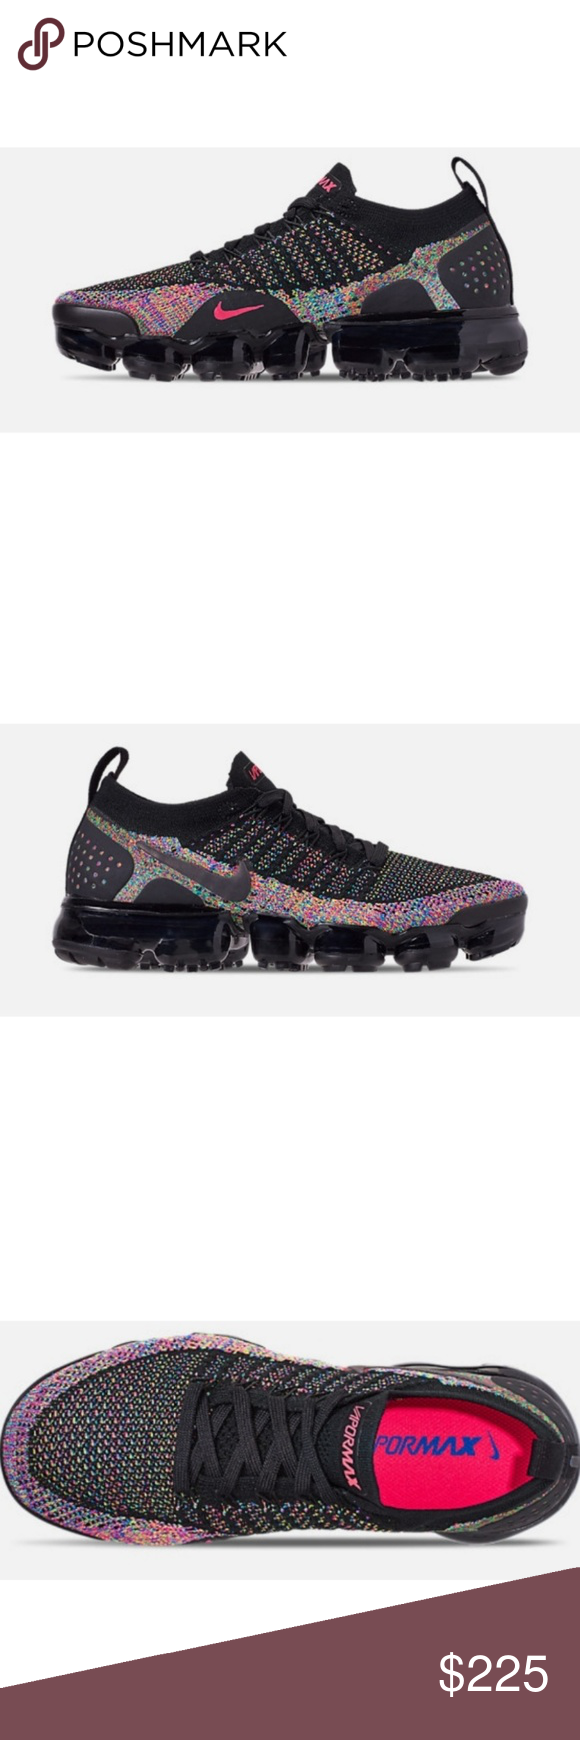 254d19a0d0 Nike Vapormax New In Box Authentic Size 9 Womens Flyknit Vapormax Firm  Price Posh Price Police = Reported and Blocked Nike Shoes Athletic Shoes